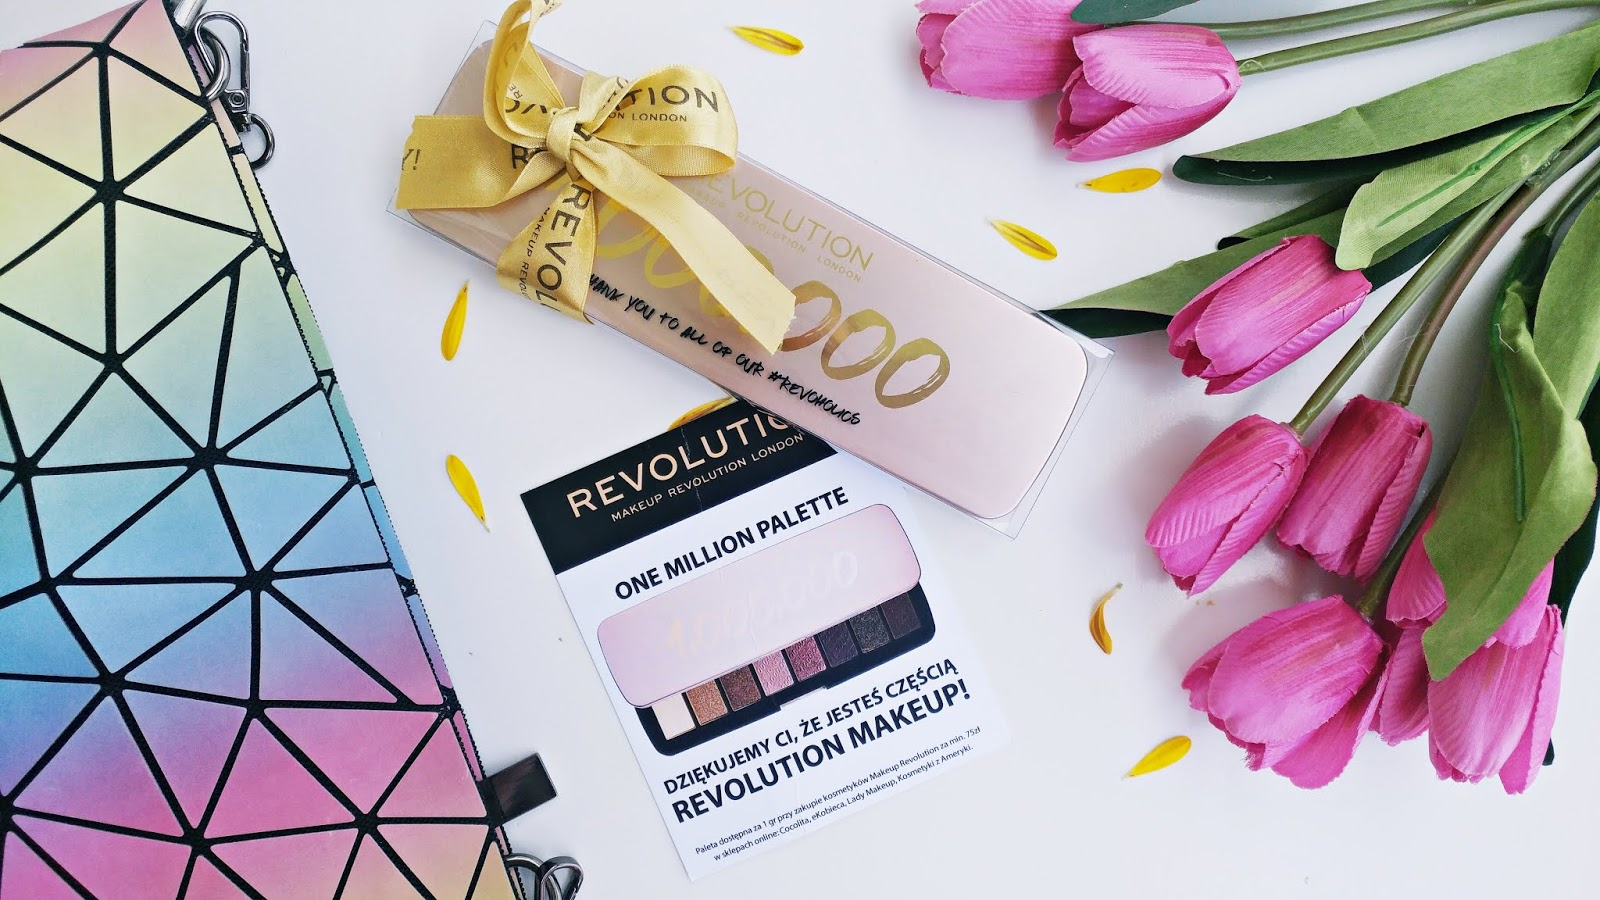 One Milion Palette - Makeup Revolution London